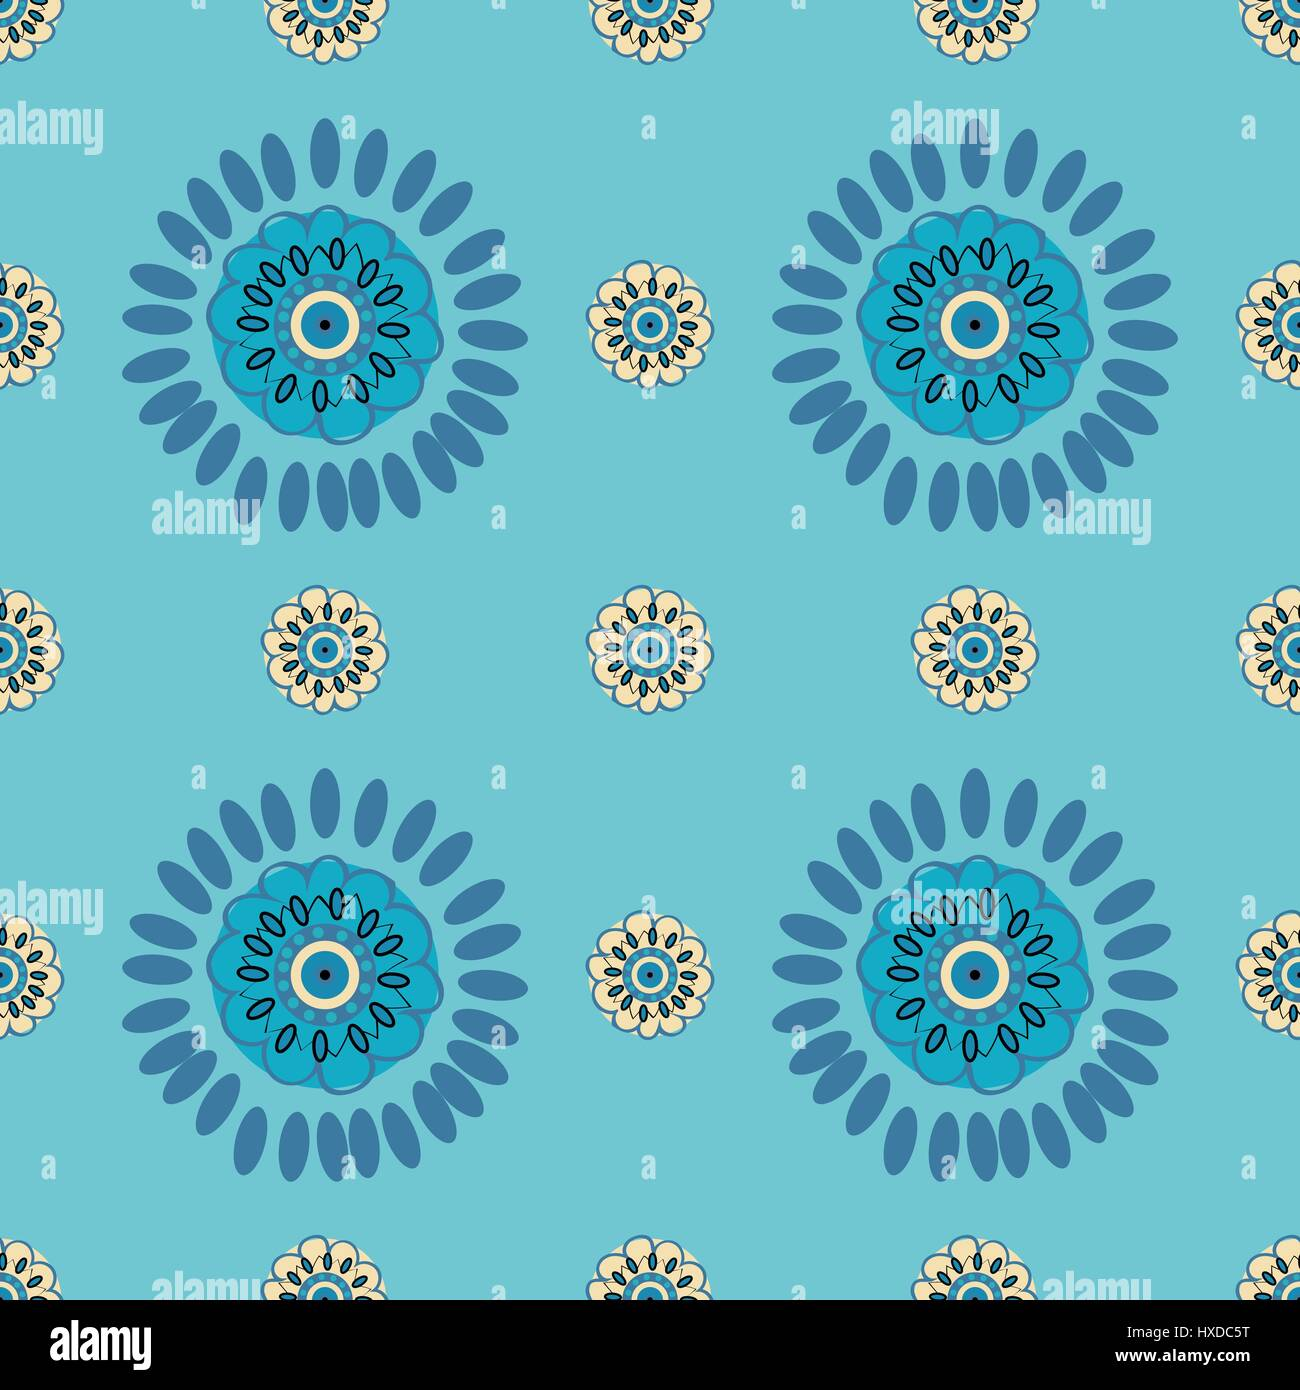 Ethnic Colorful pattern backgrounds. - Stock Vector